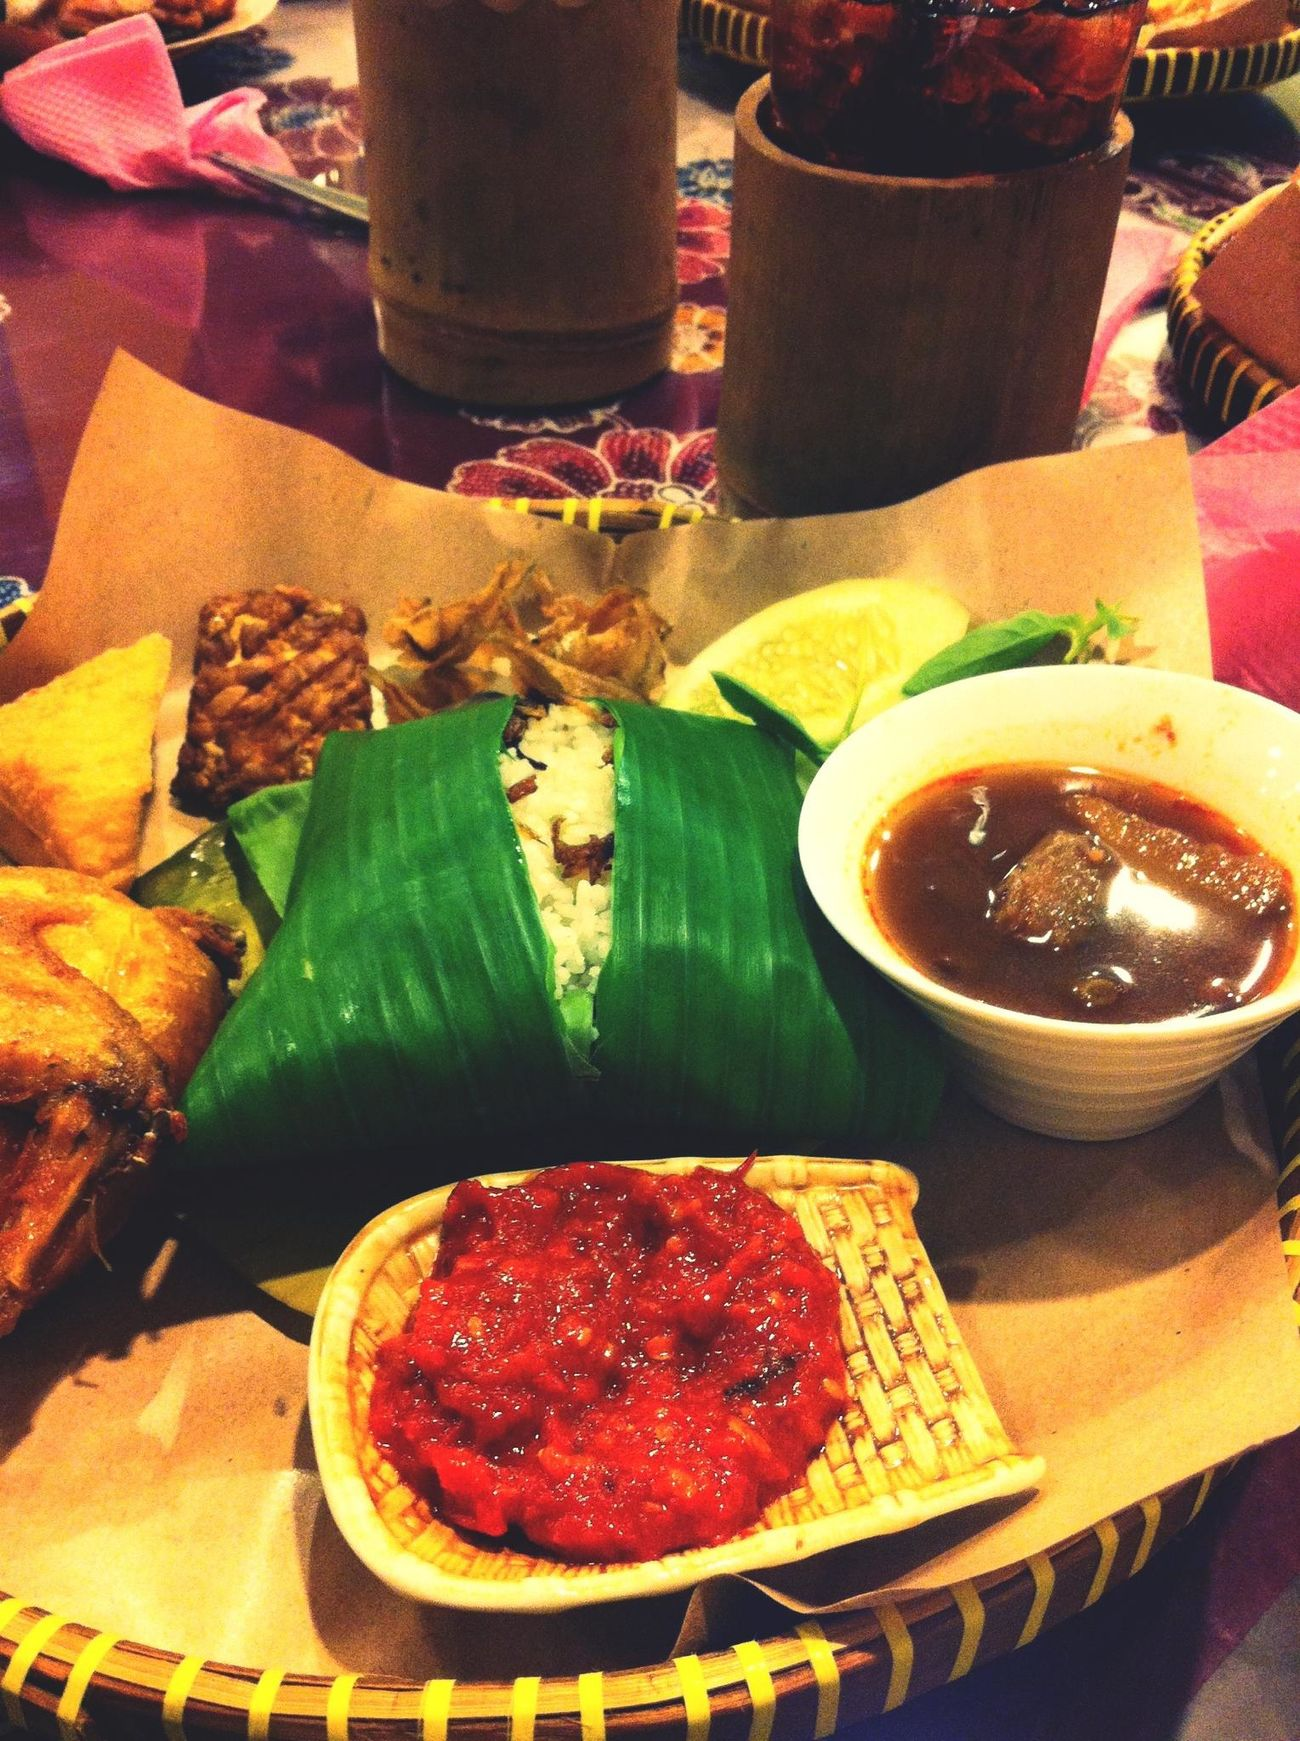 indonesian food at pondok malindo. :)